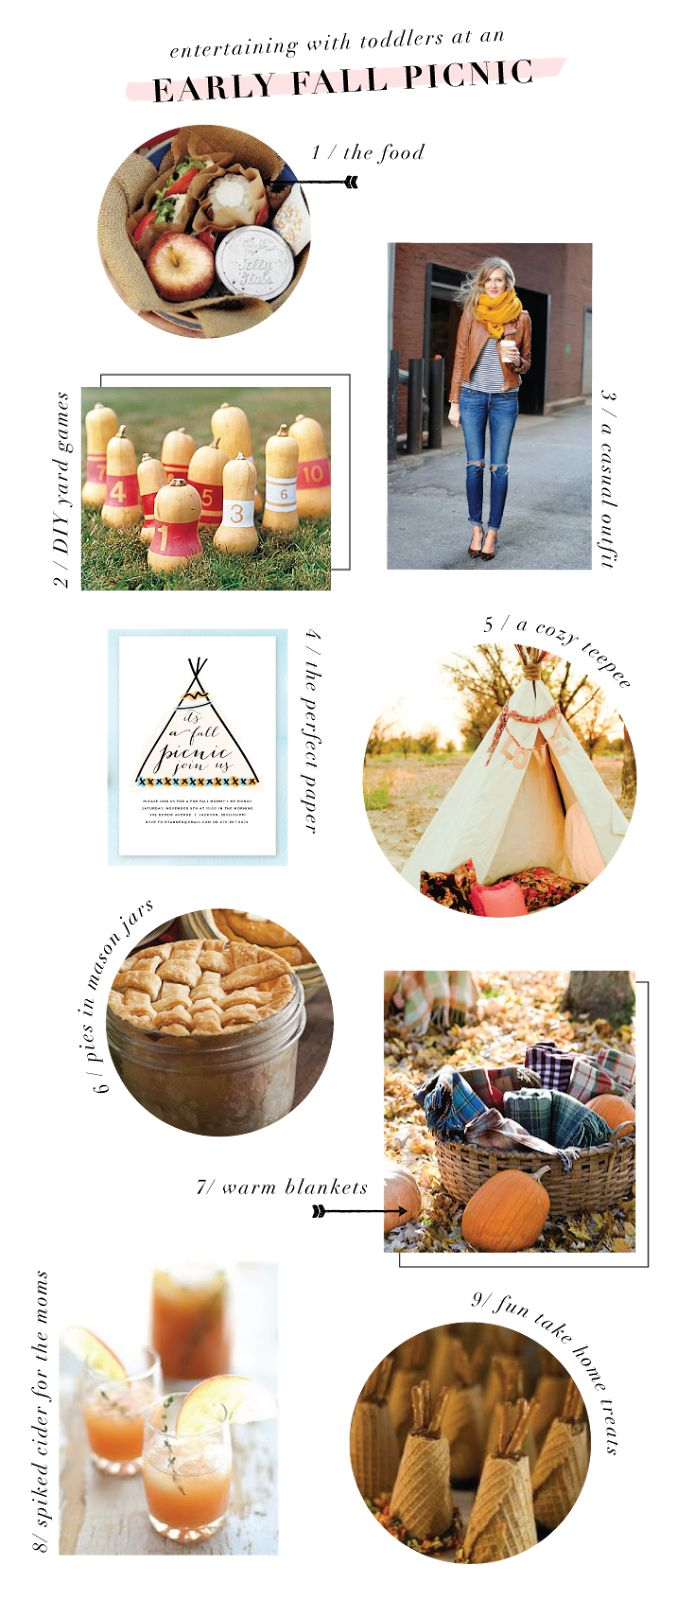 Effortless Entertaining: Early Fall Picnic